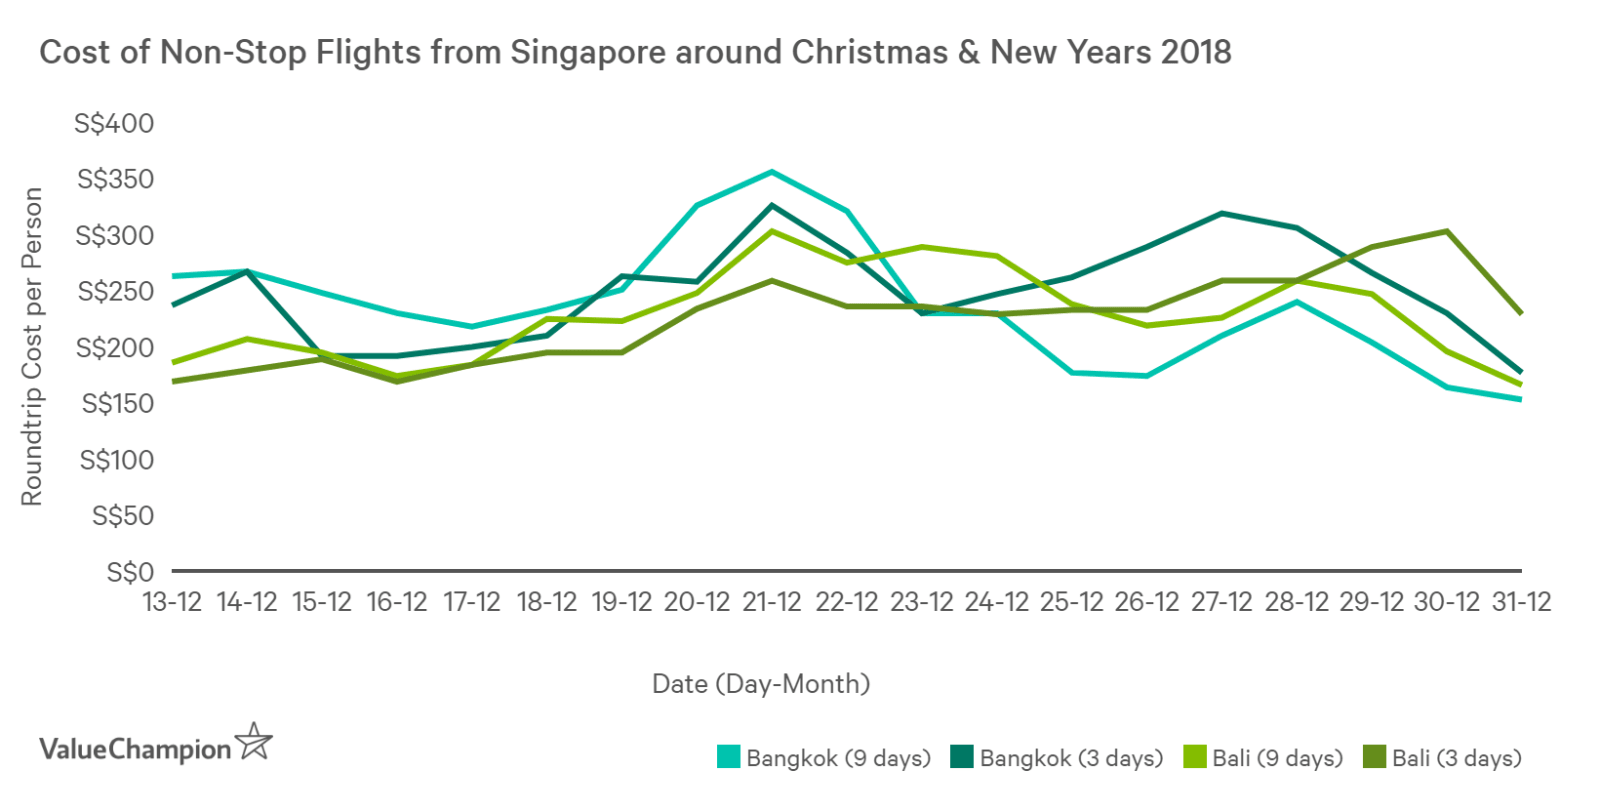 This graph shows cost of round-trip tickets for non-stop flights from Singapore to Bangkok and Bali around Christmas & New Years ranges from S$150 to S$360